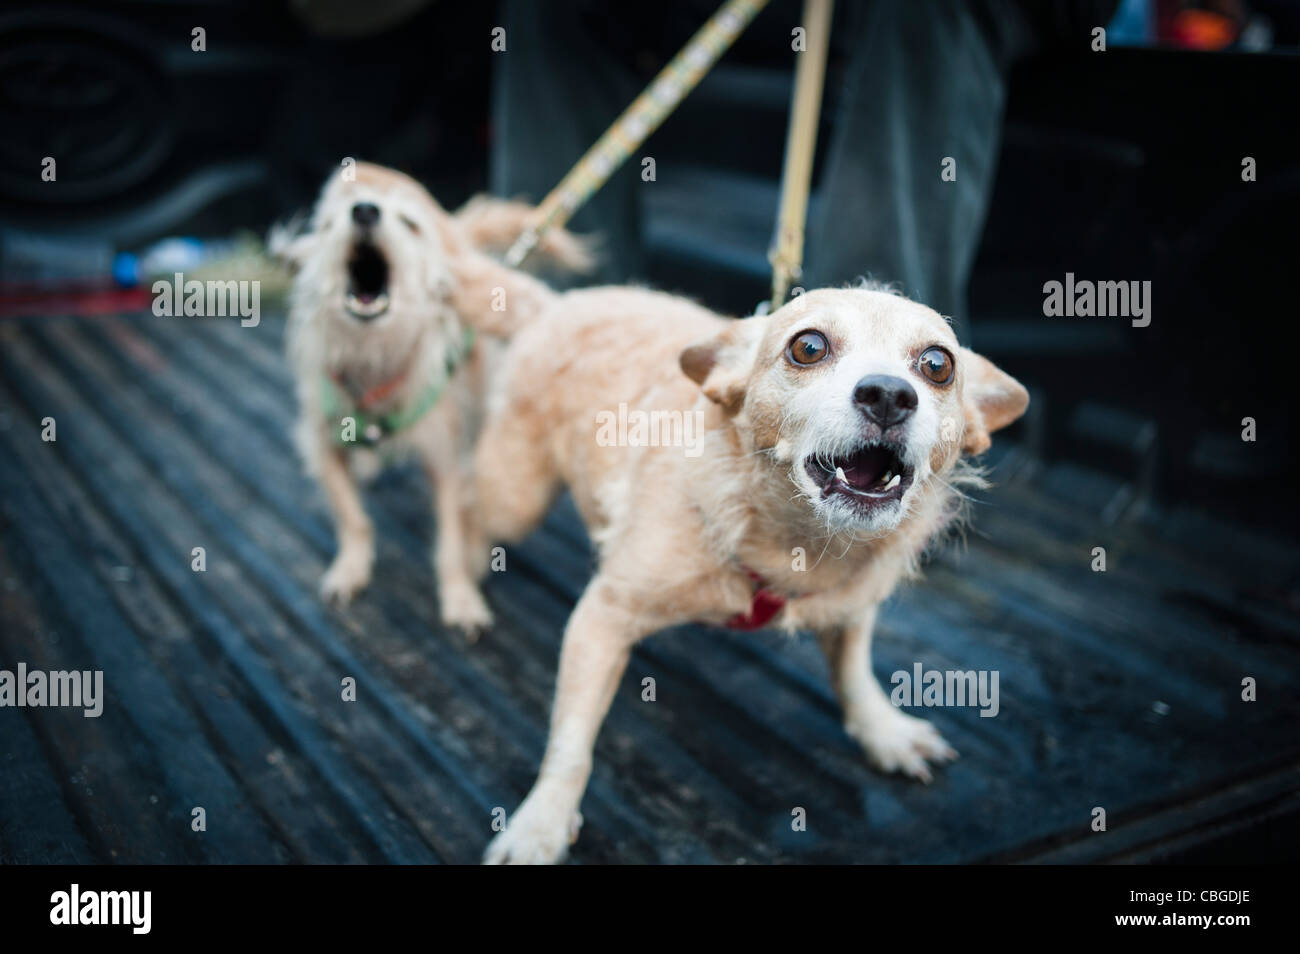 Fierce dogs on a leash in Bangkok, Thailand. - Stock Image